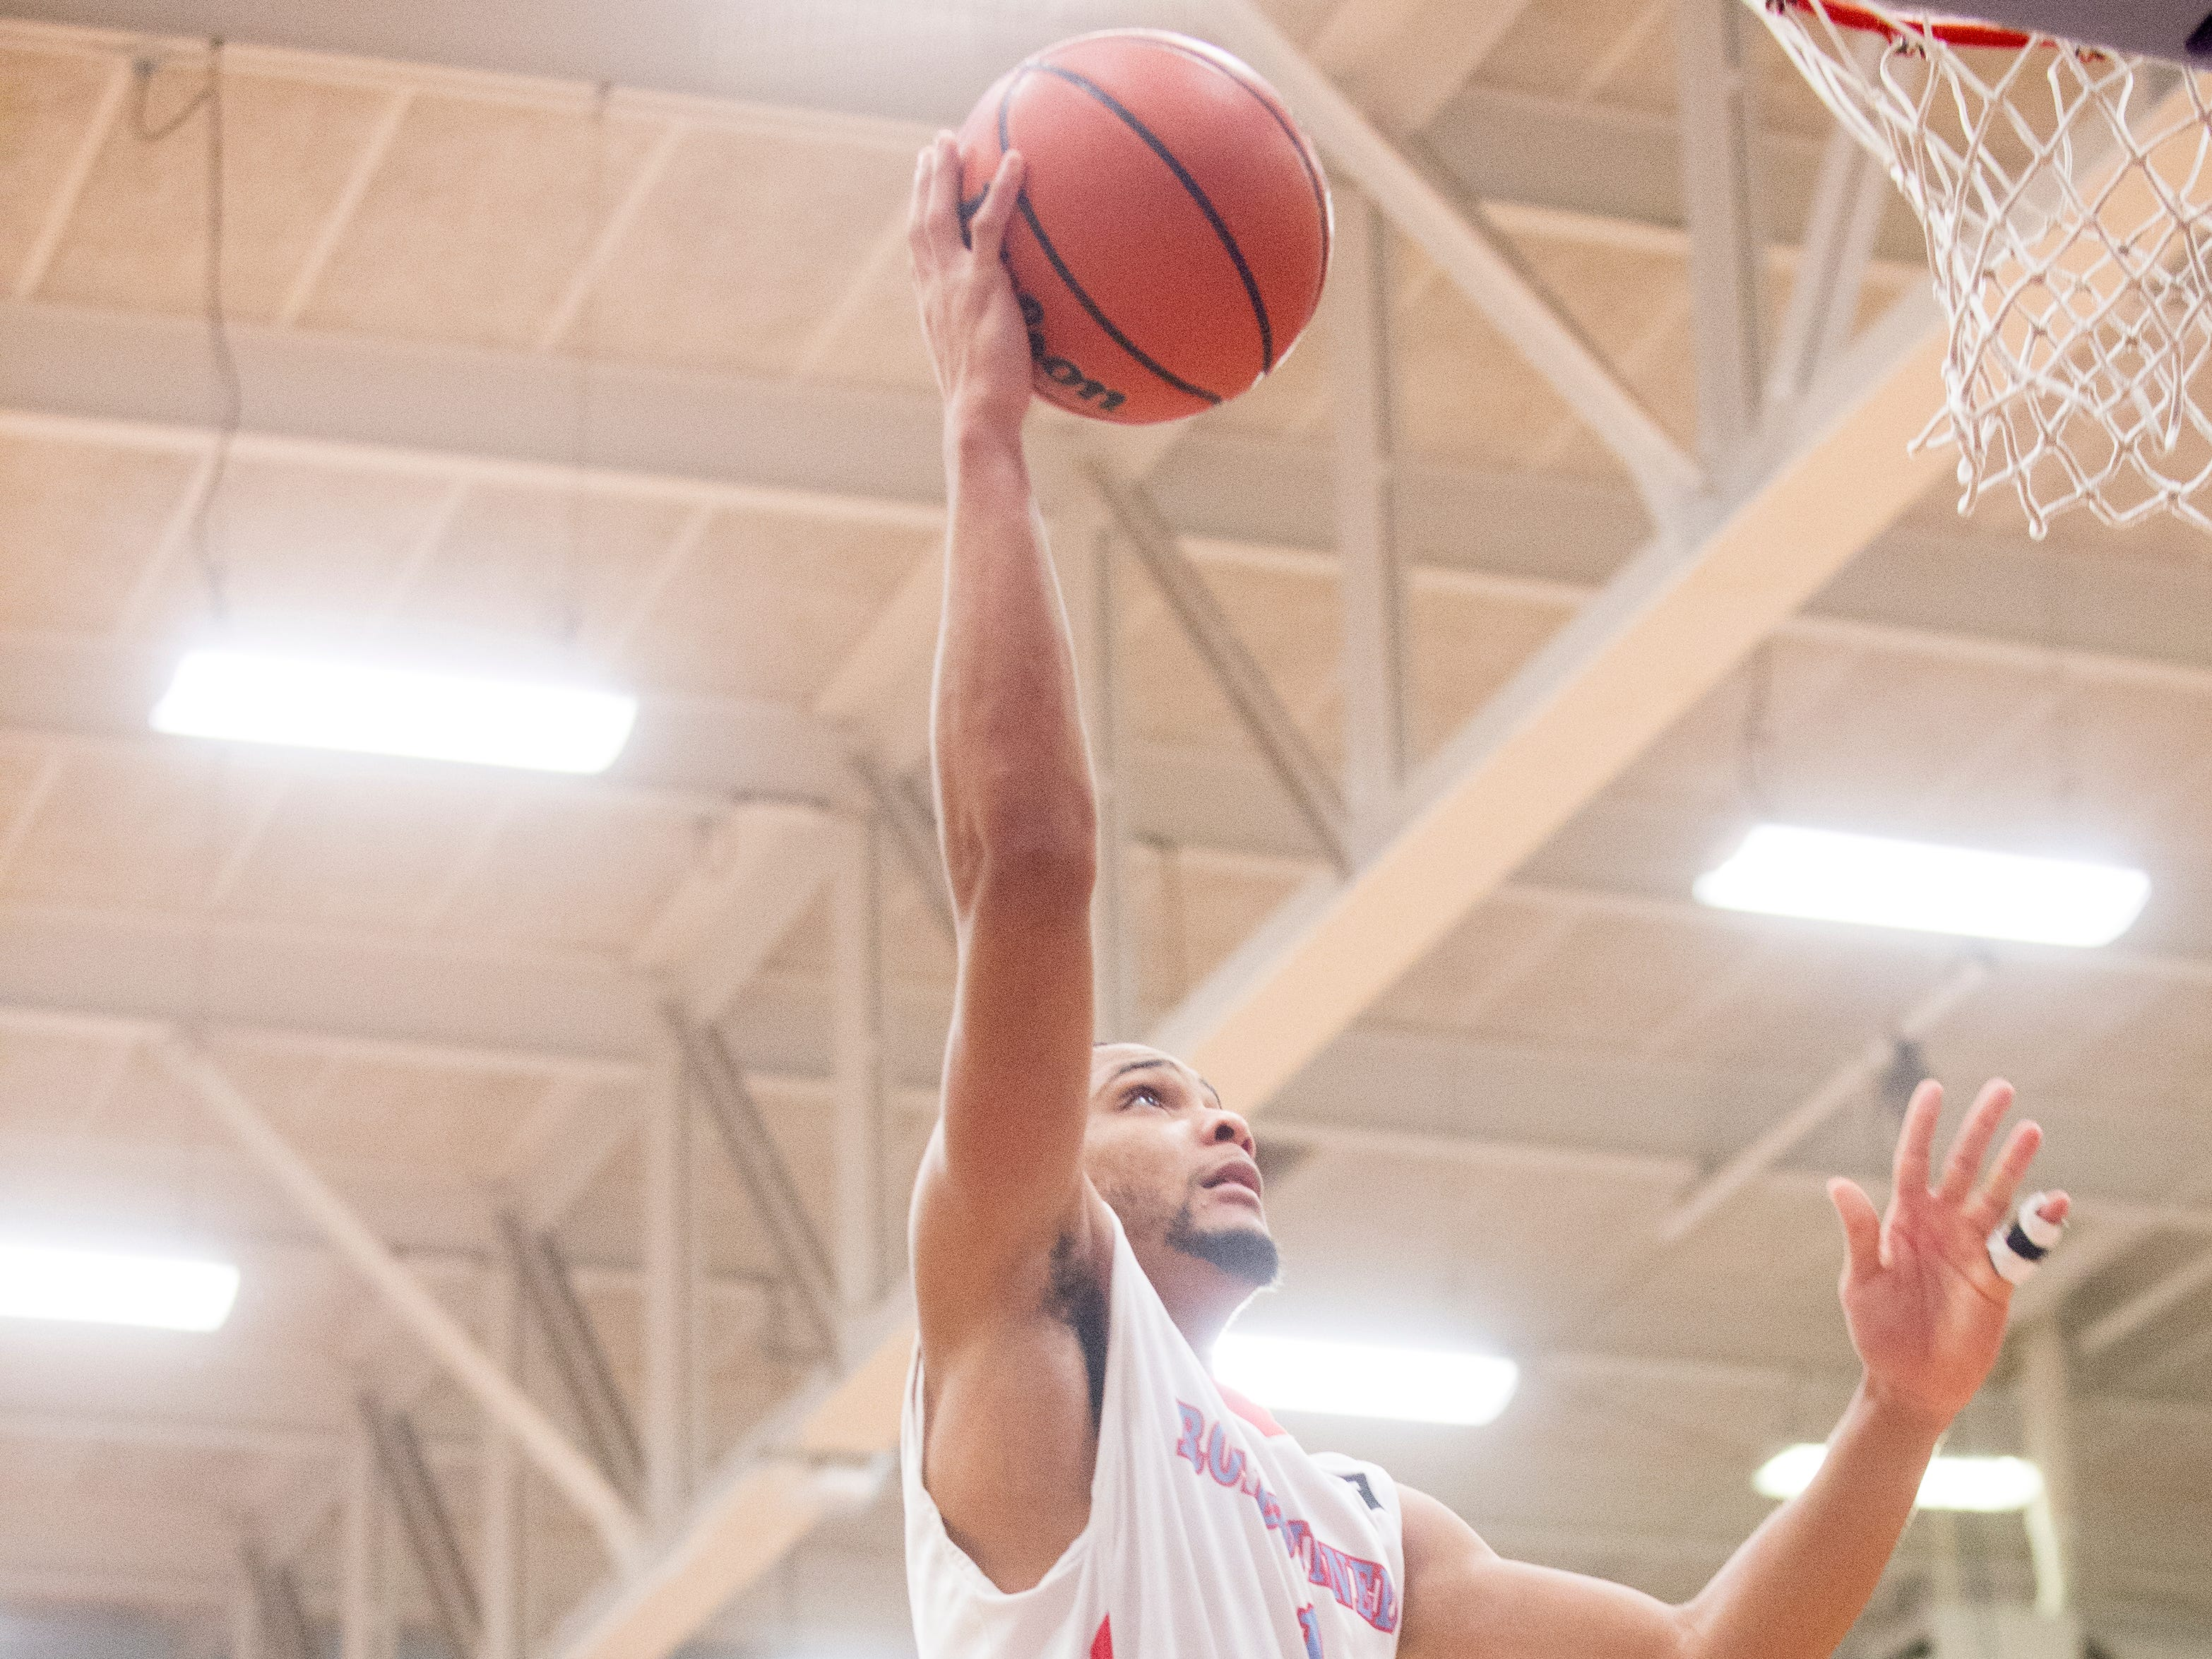 Austin-East's Wesley Allen (1) shoots the ball during a game between Austin-East and Fulton at Austin-East High School in Knoxville, Tennessee on Saturday, January 5, 2019.